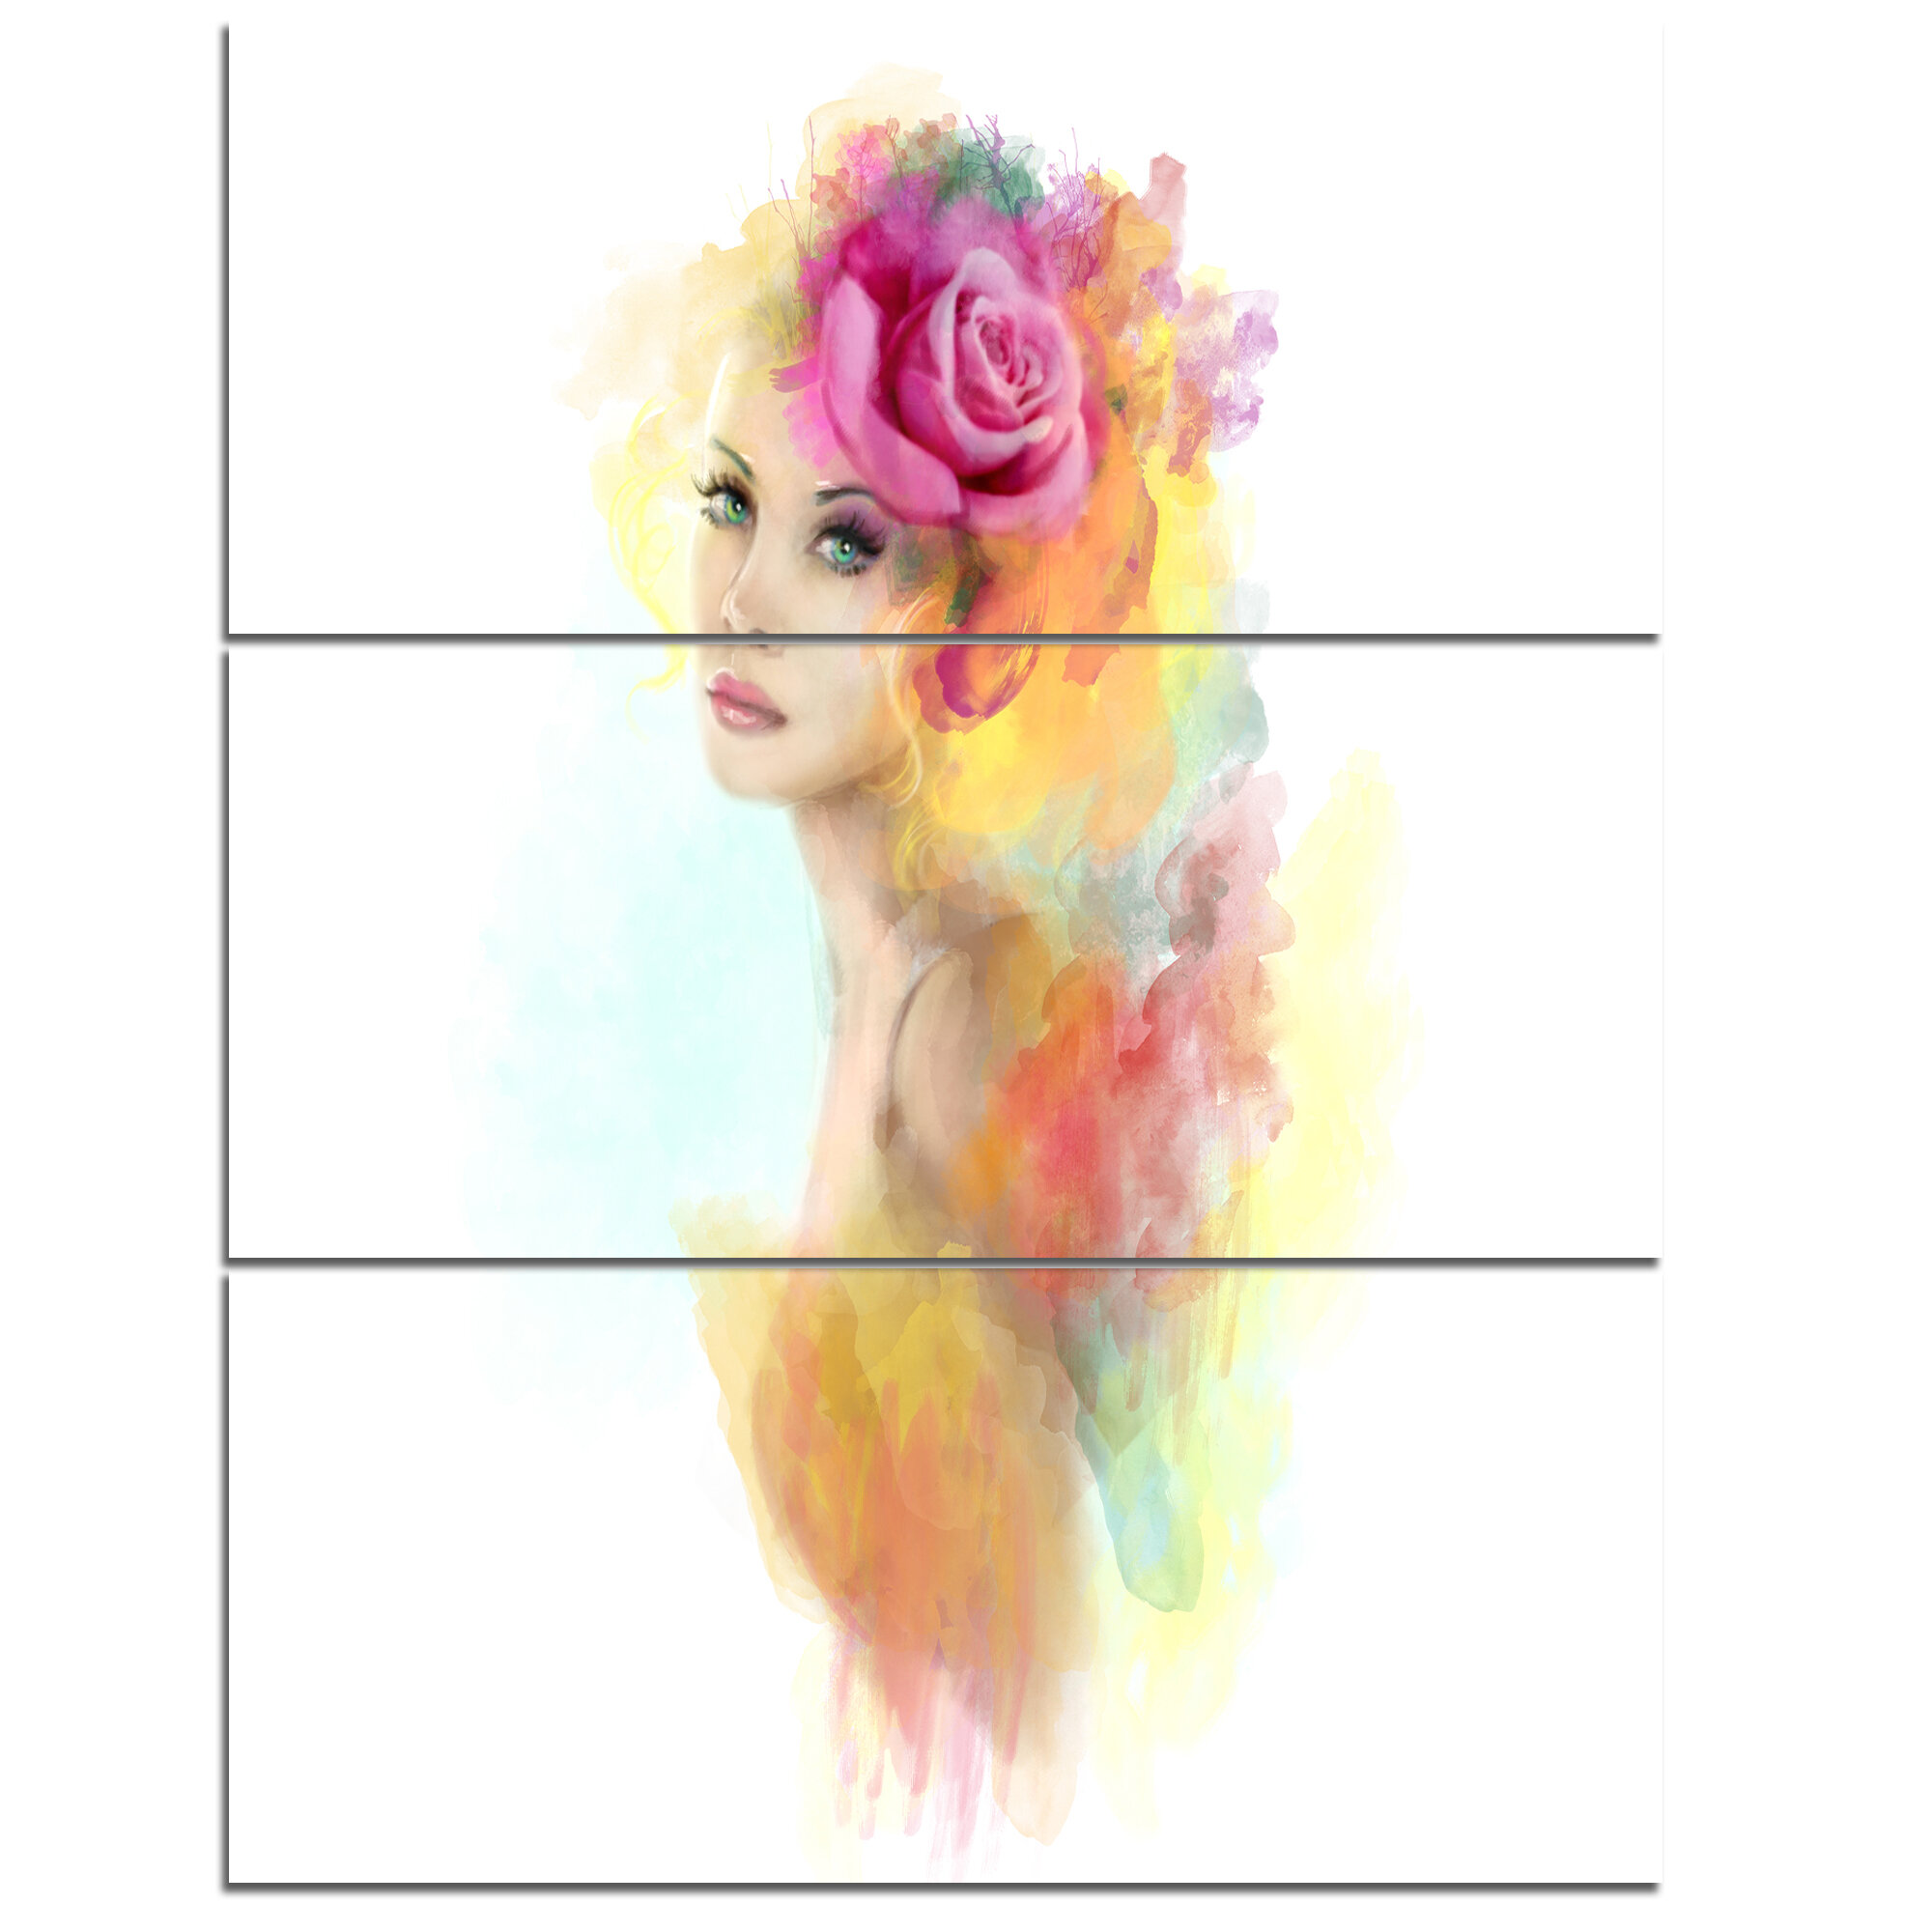 Designart Summer Woman With Flowers 3 Piece Graphic Art On Wrapped Canvas Set Wayfair